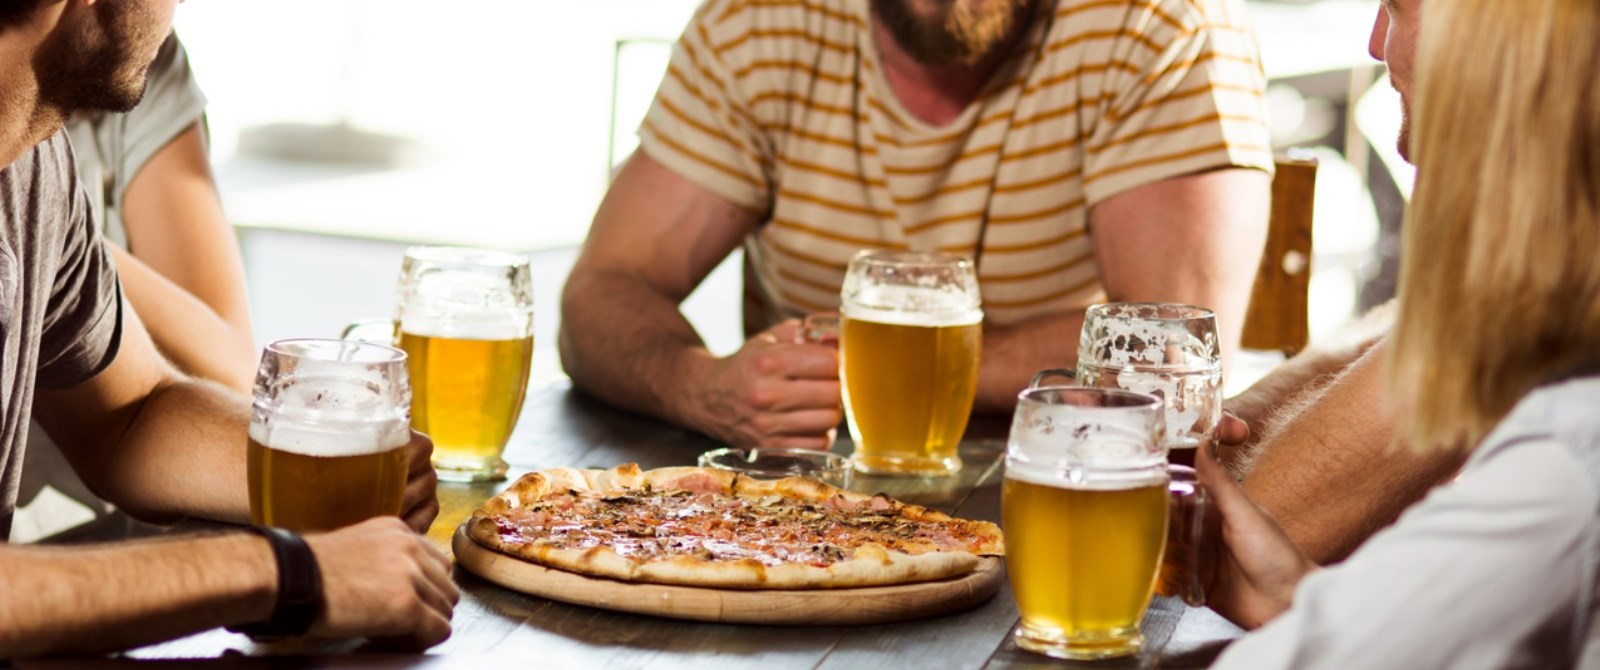 group of young people eating pizza and drinking beer